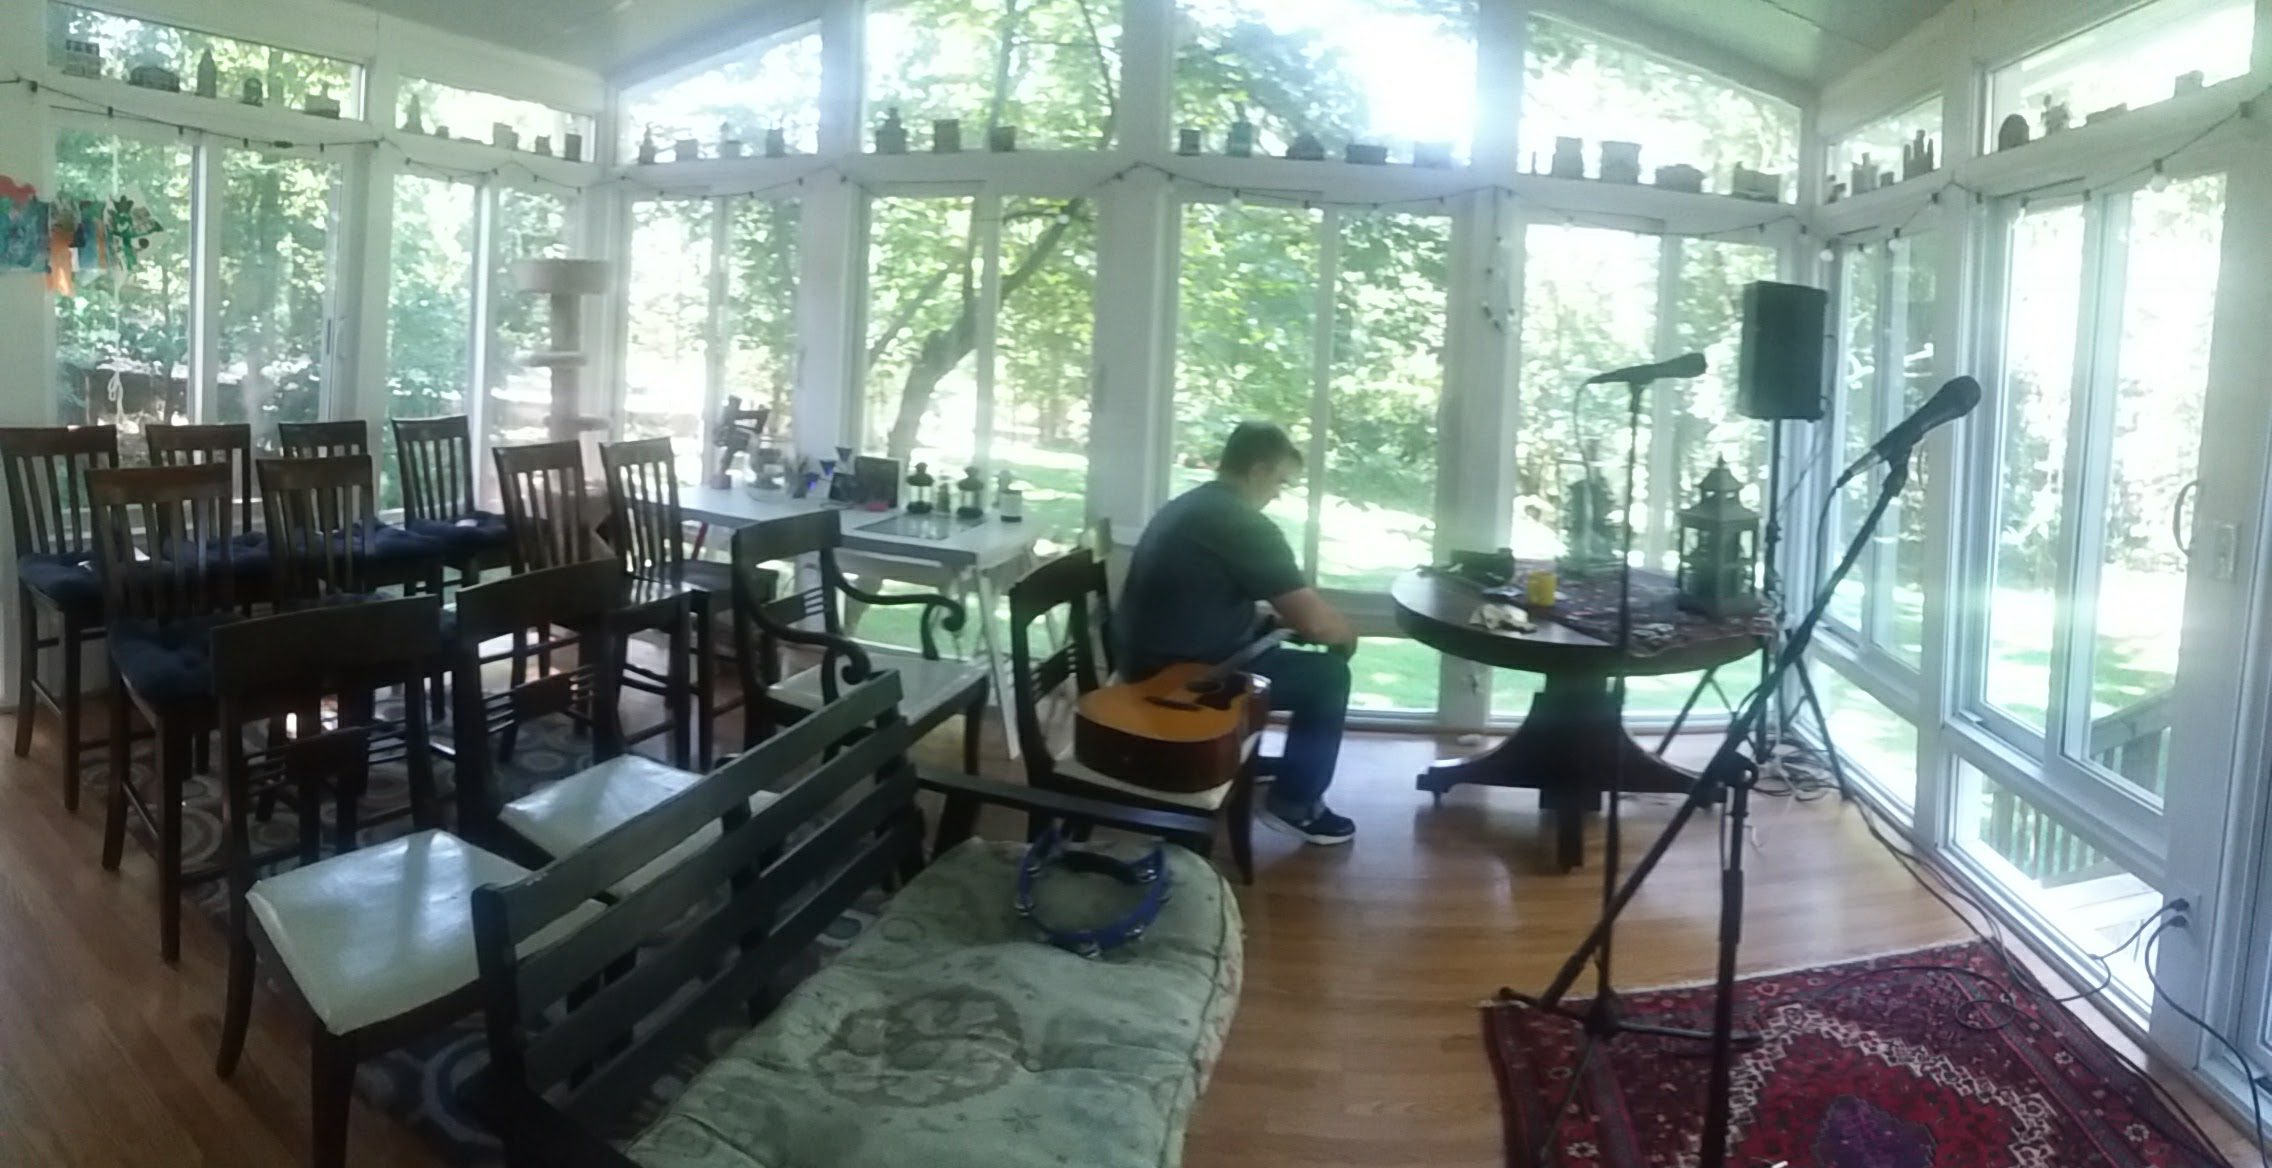 Randy prepares for a house concert at the Bauer house (VA)